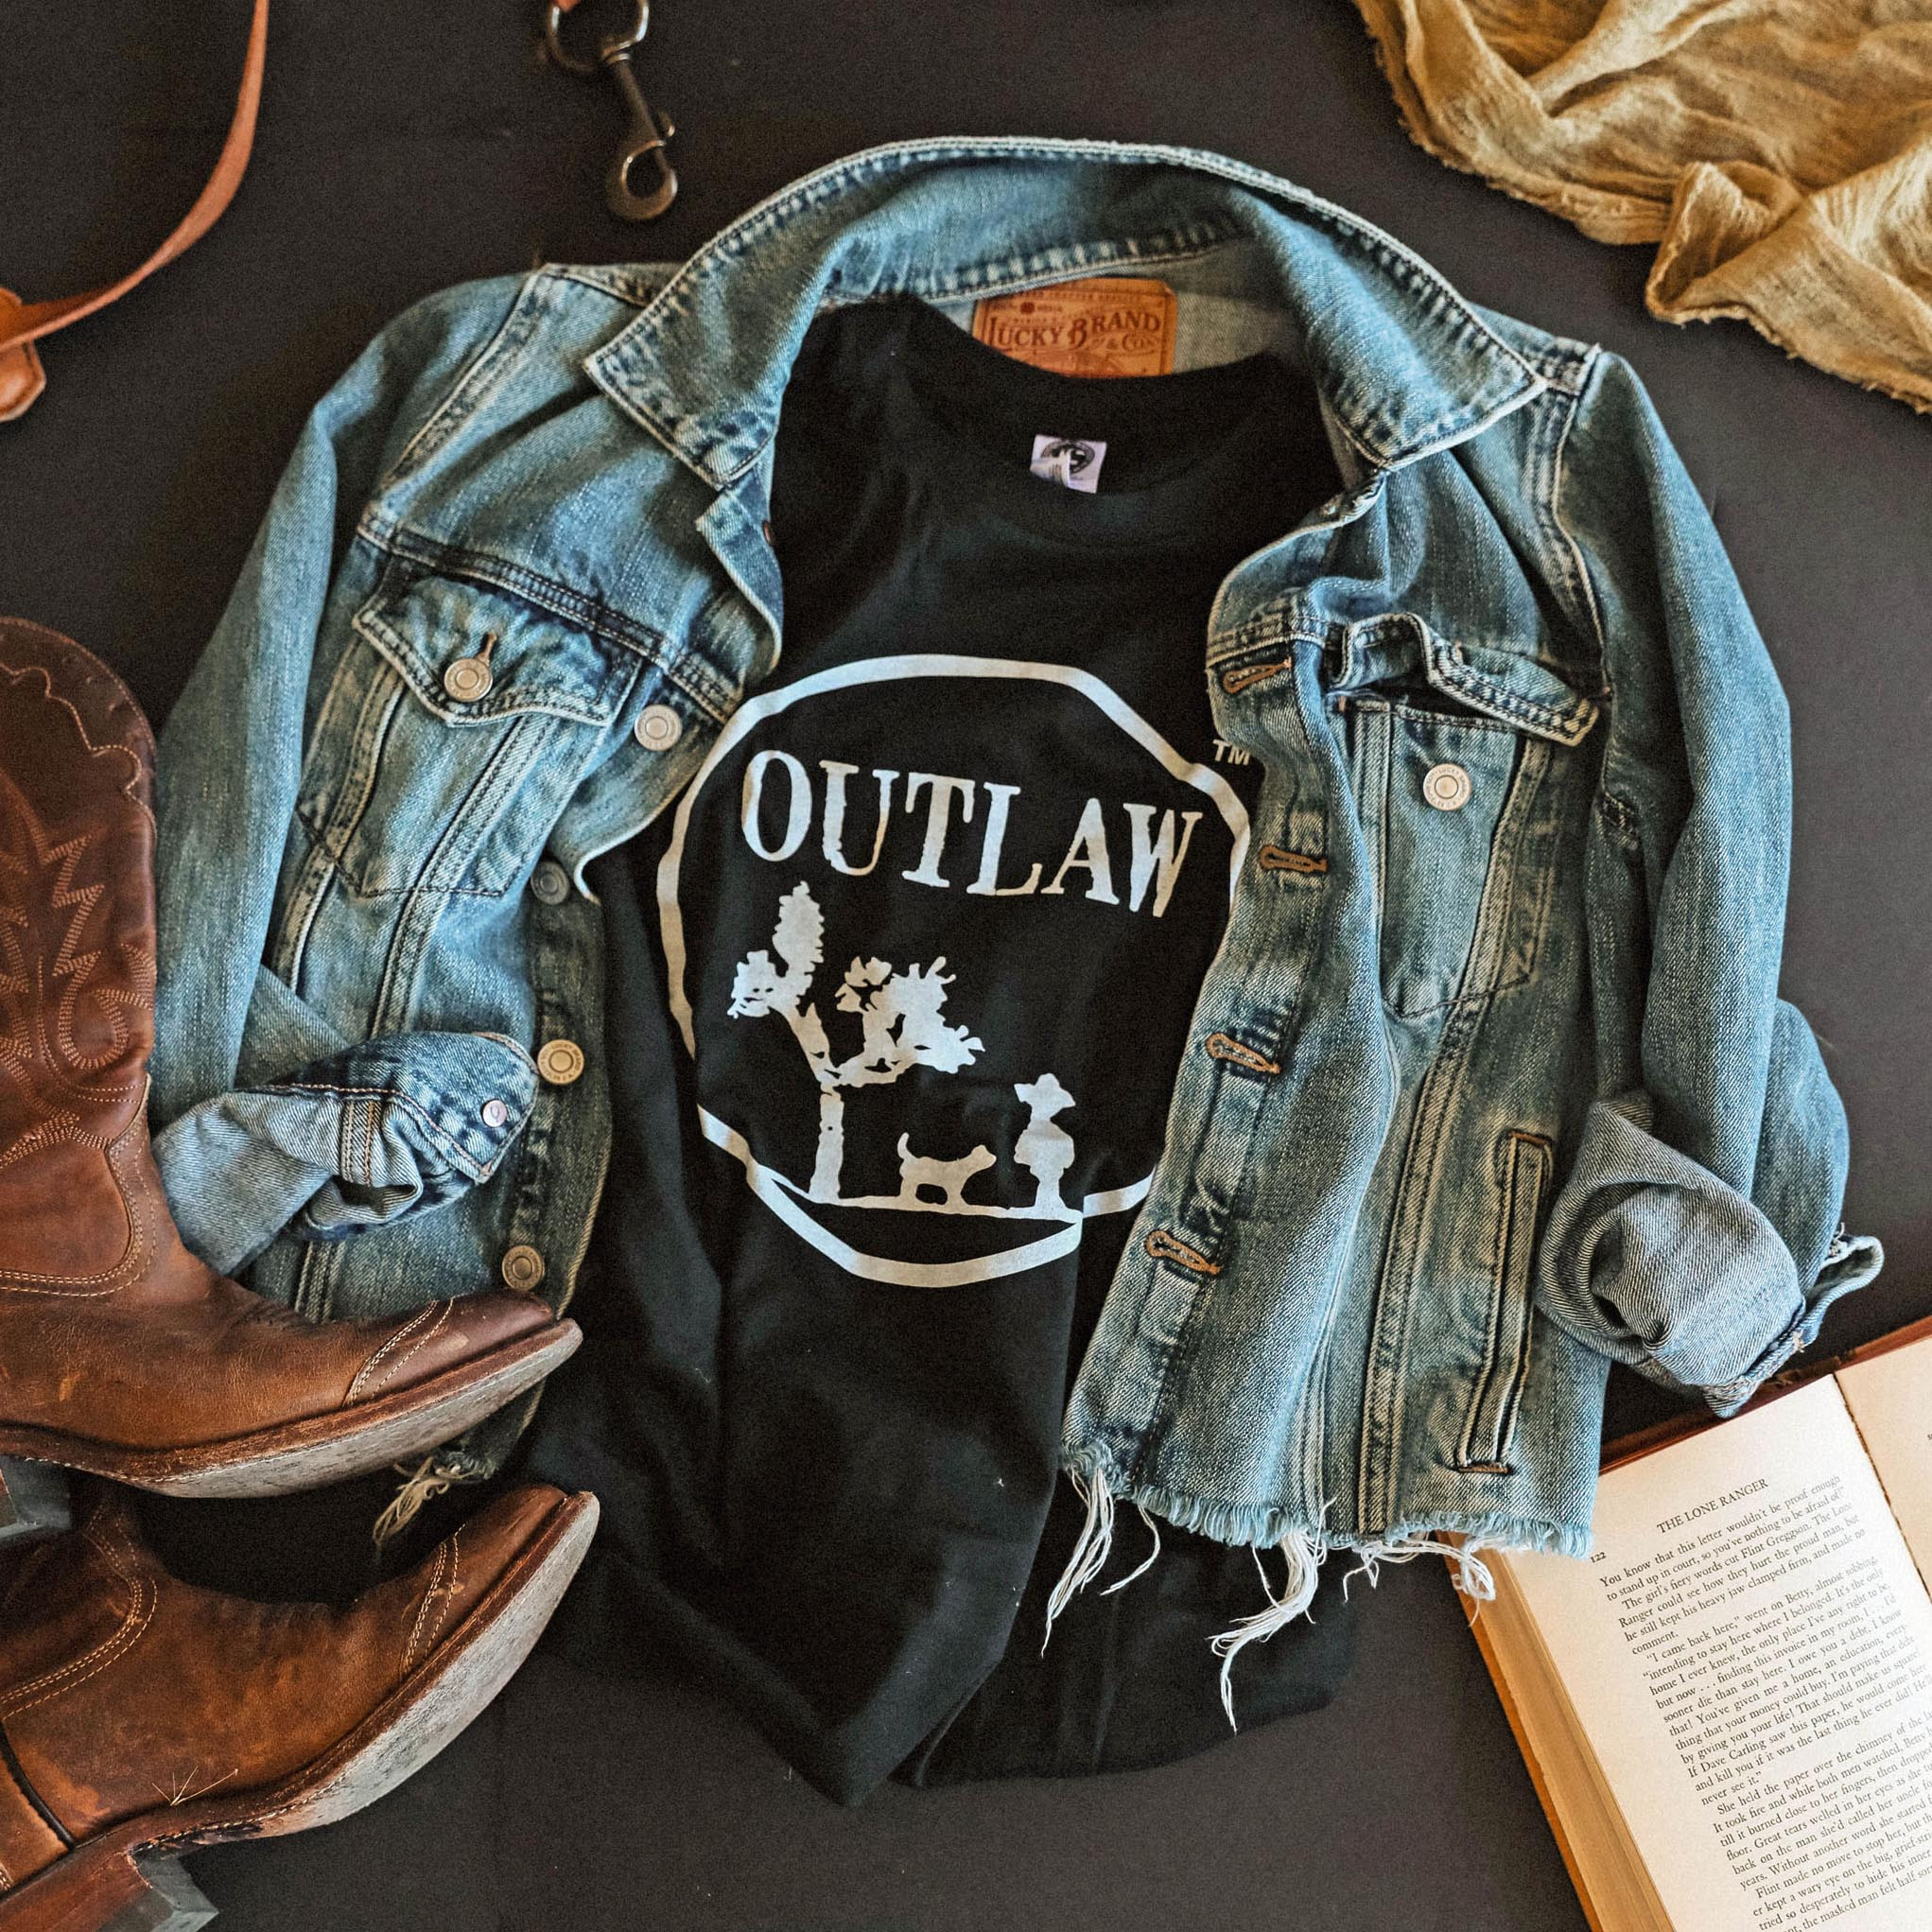 Shop Outlaw Gear and be the best dressed outlaw in the west